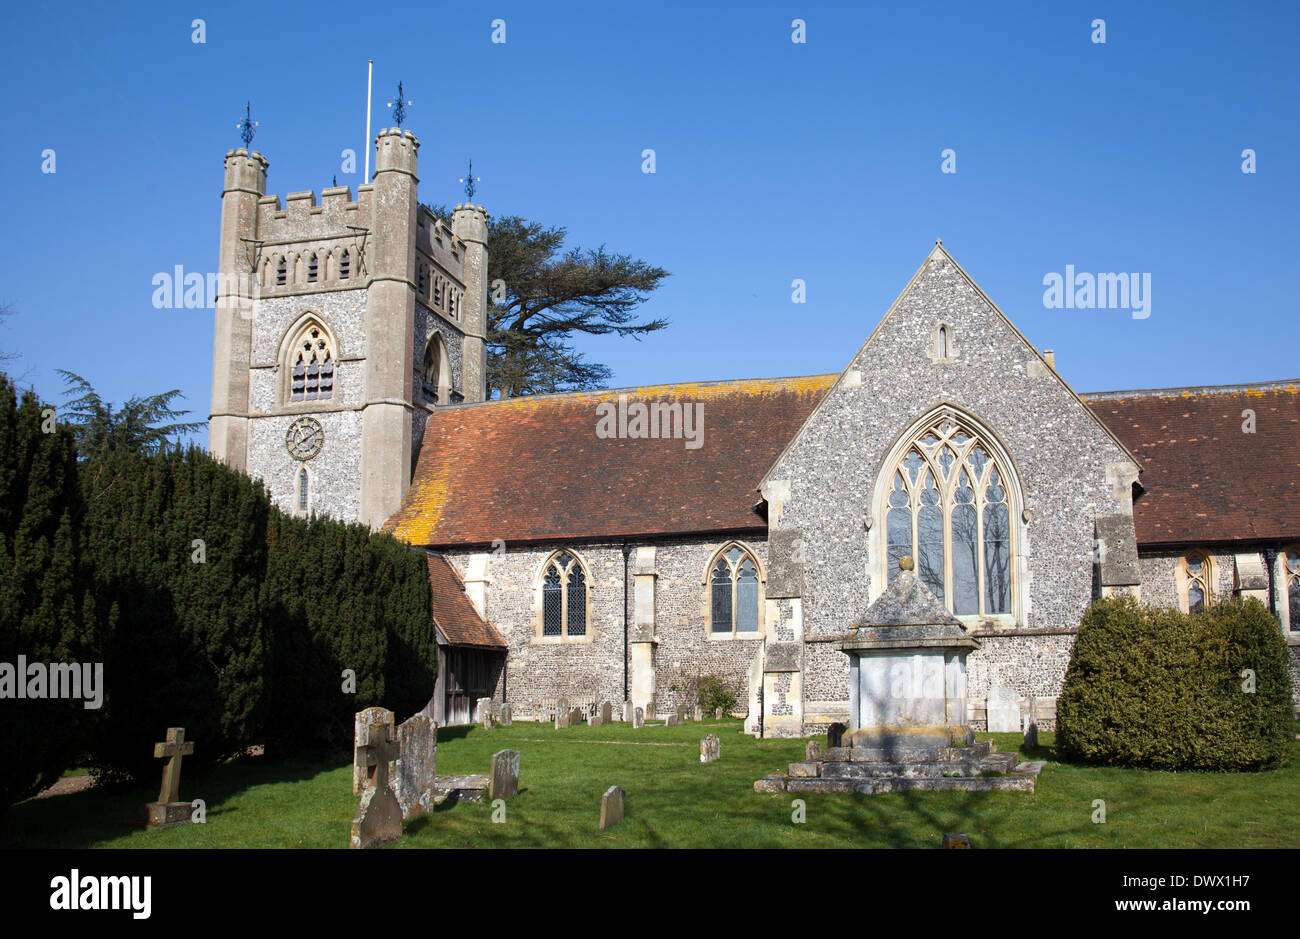 St Mary the Virgin Church in Hambleden - Buckinghamshire UK - Stock Image